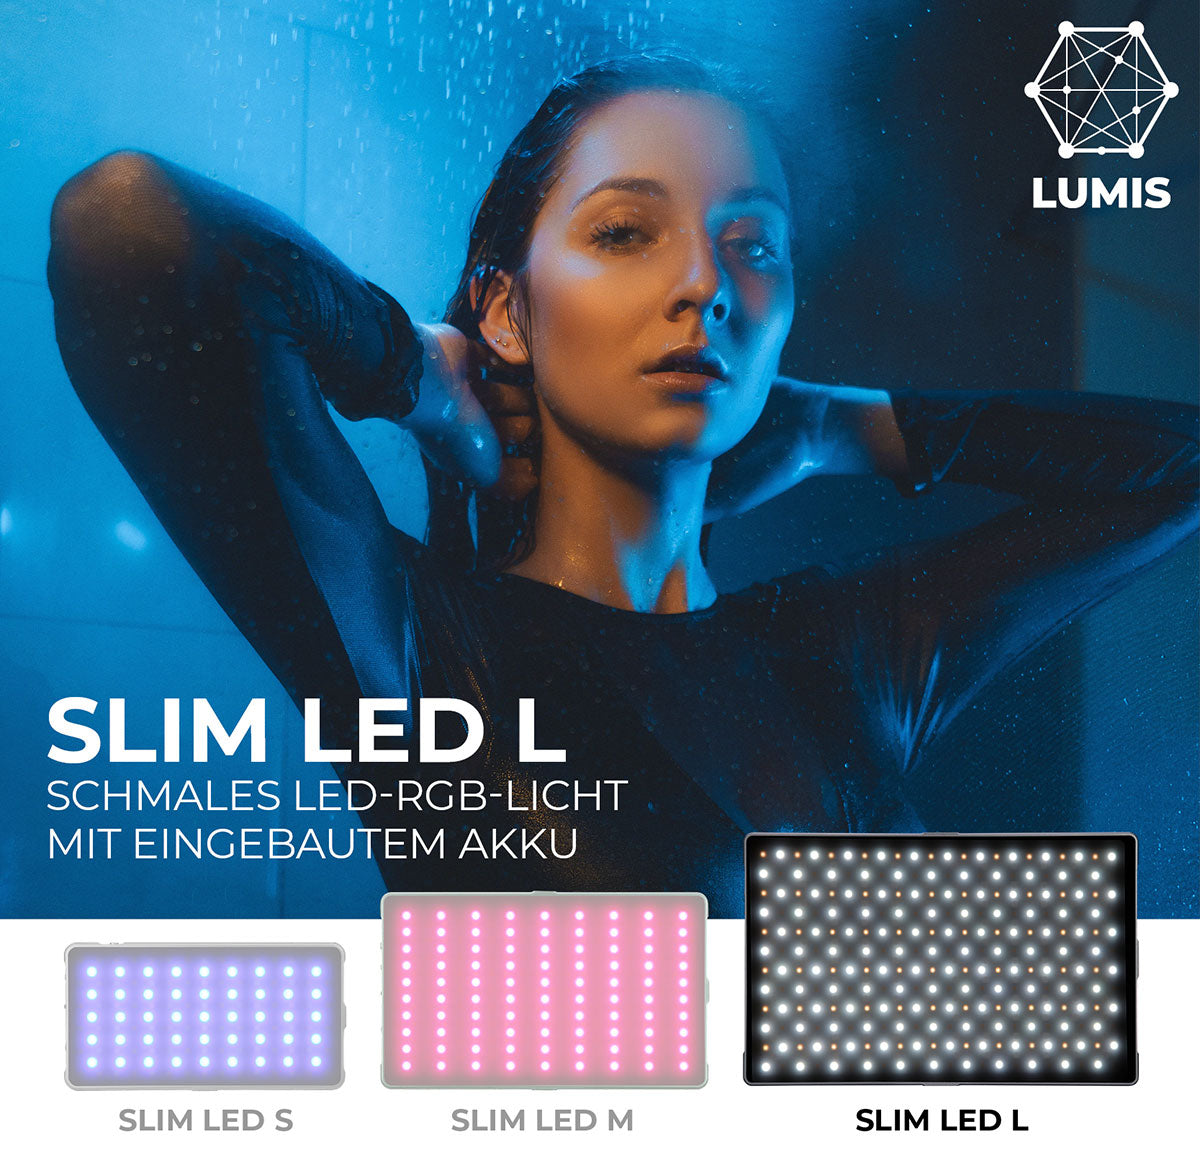 Lumis Slim LED L - flaches RGB LED-Licht mit eingebautem Akku